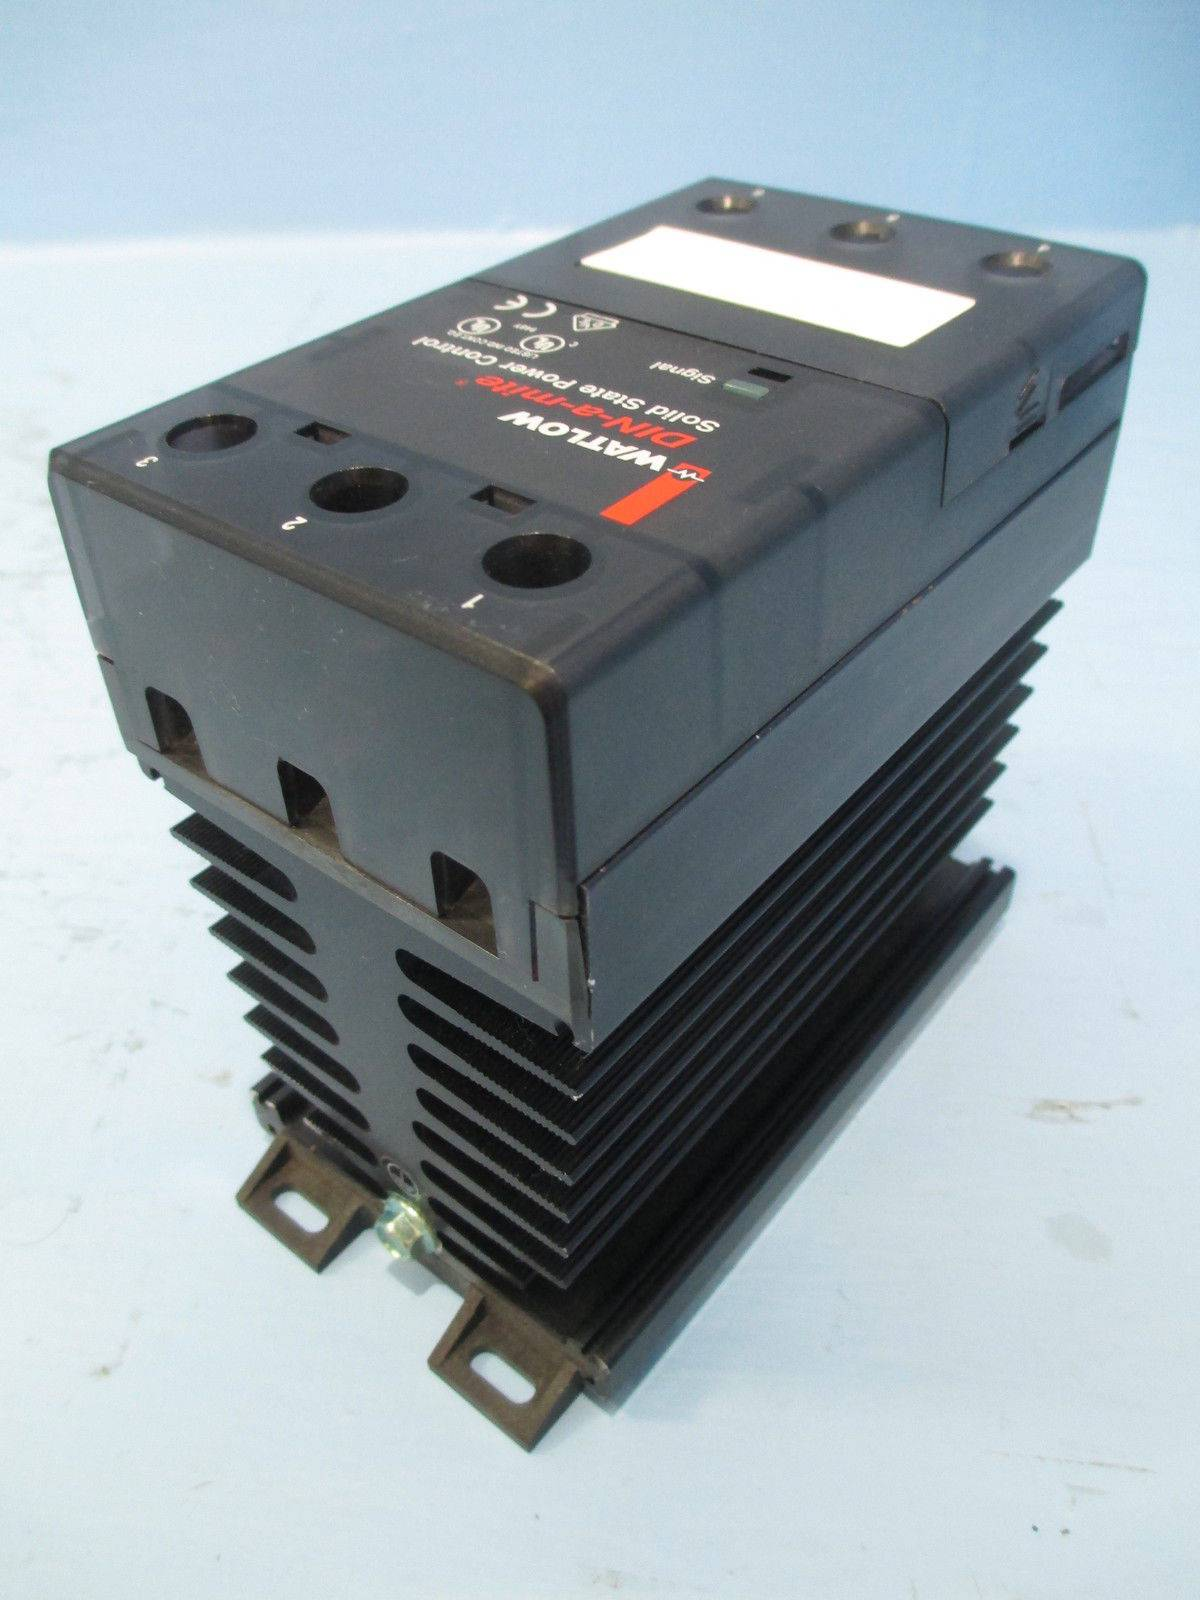 New Watlow Dc20 24k2 0000 Din A Mite Solid State Power Control Nib Relay 40a 240v Tk1545 1 River City Industrial